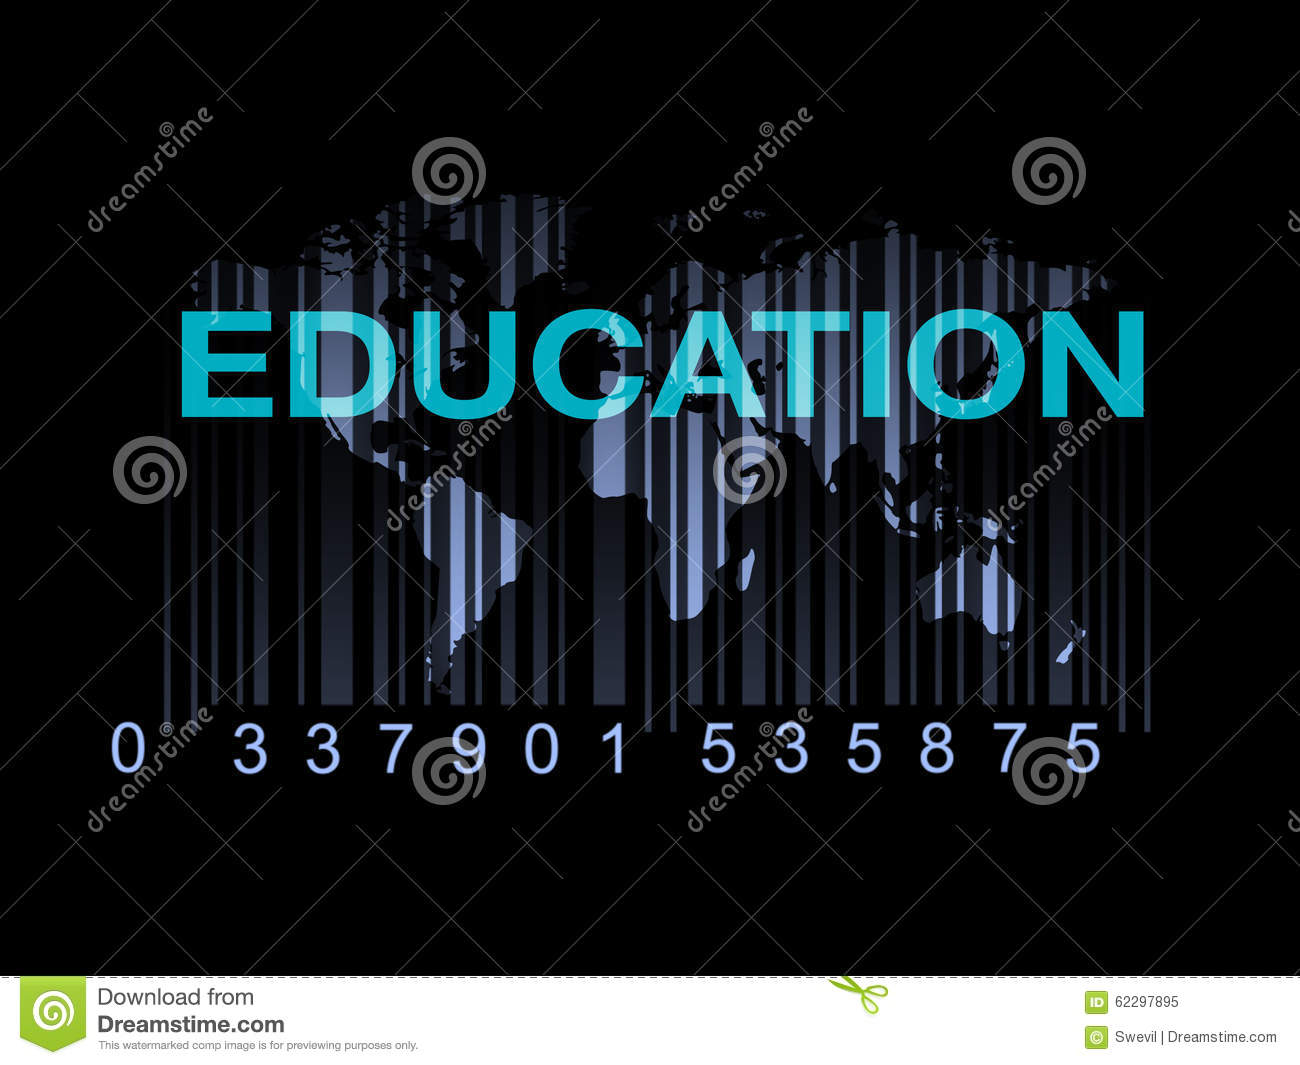 Education on the world map with barcode (quality of education)